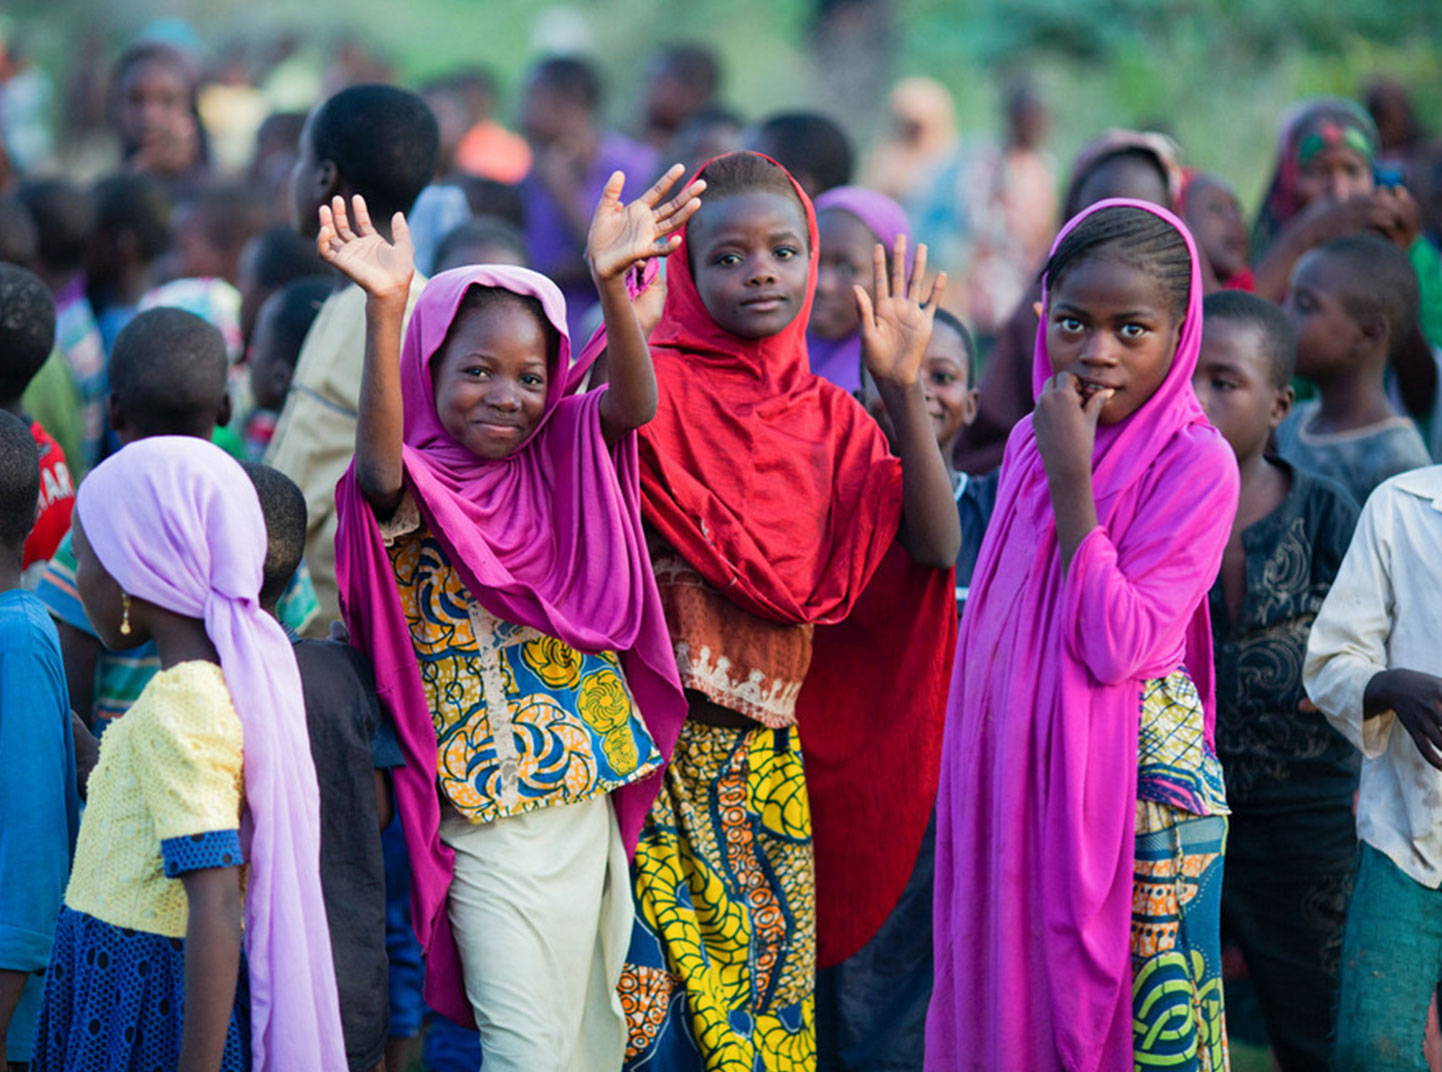 A group of children gather in the Sahel region in Niger. Three of them are smiling and waving at the camera.